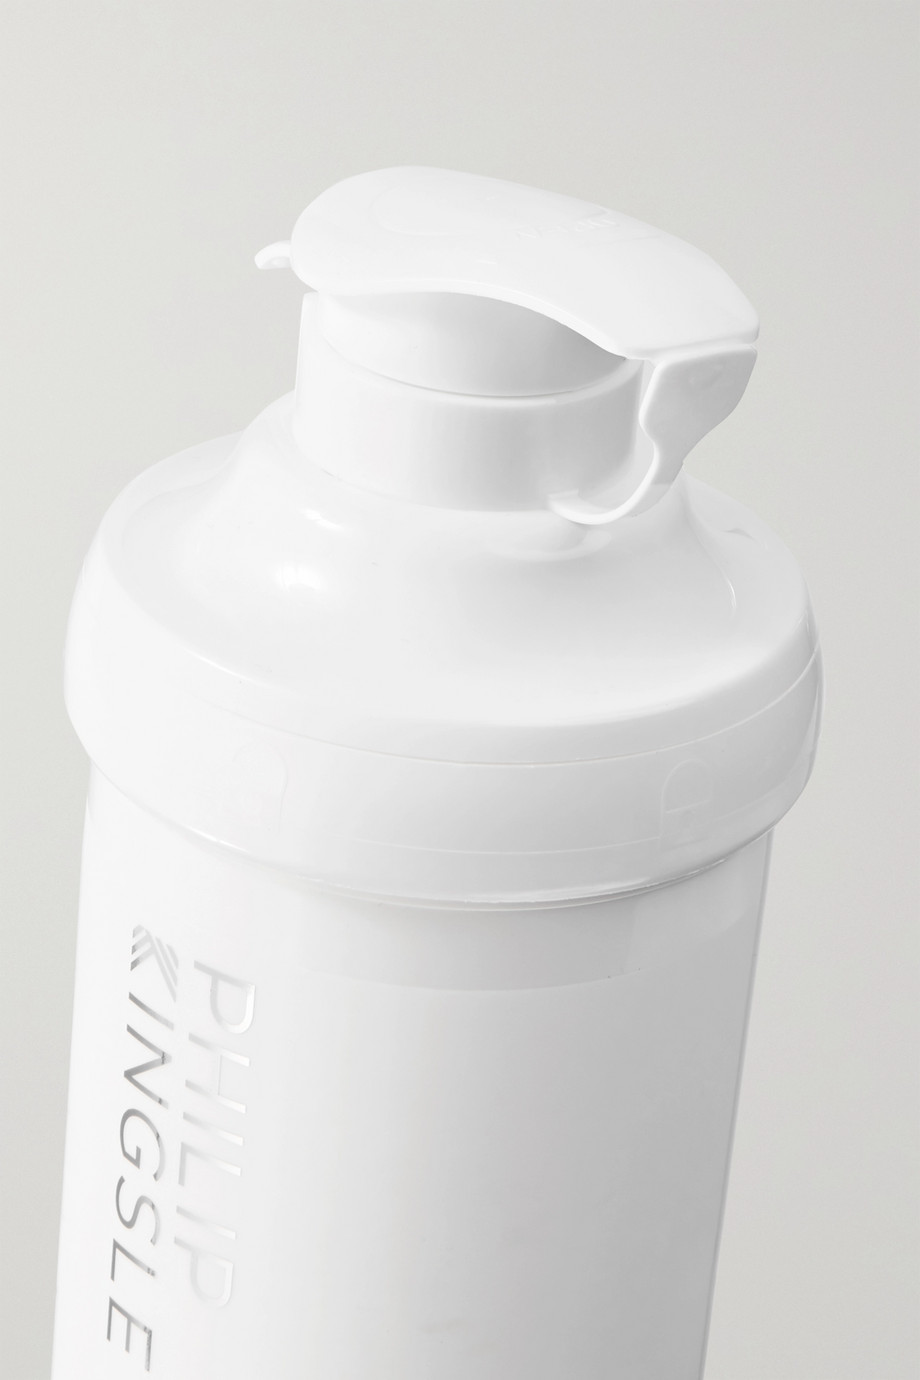 PHILIP KINGSLEY Elasticizer, 500ml